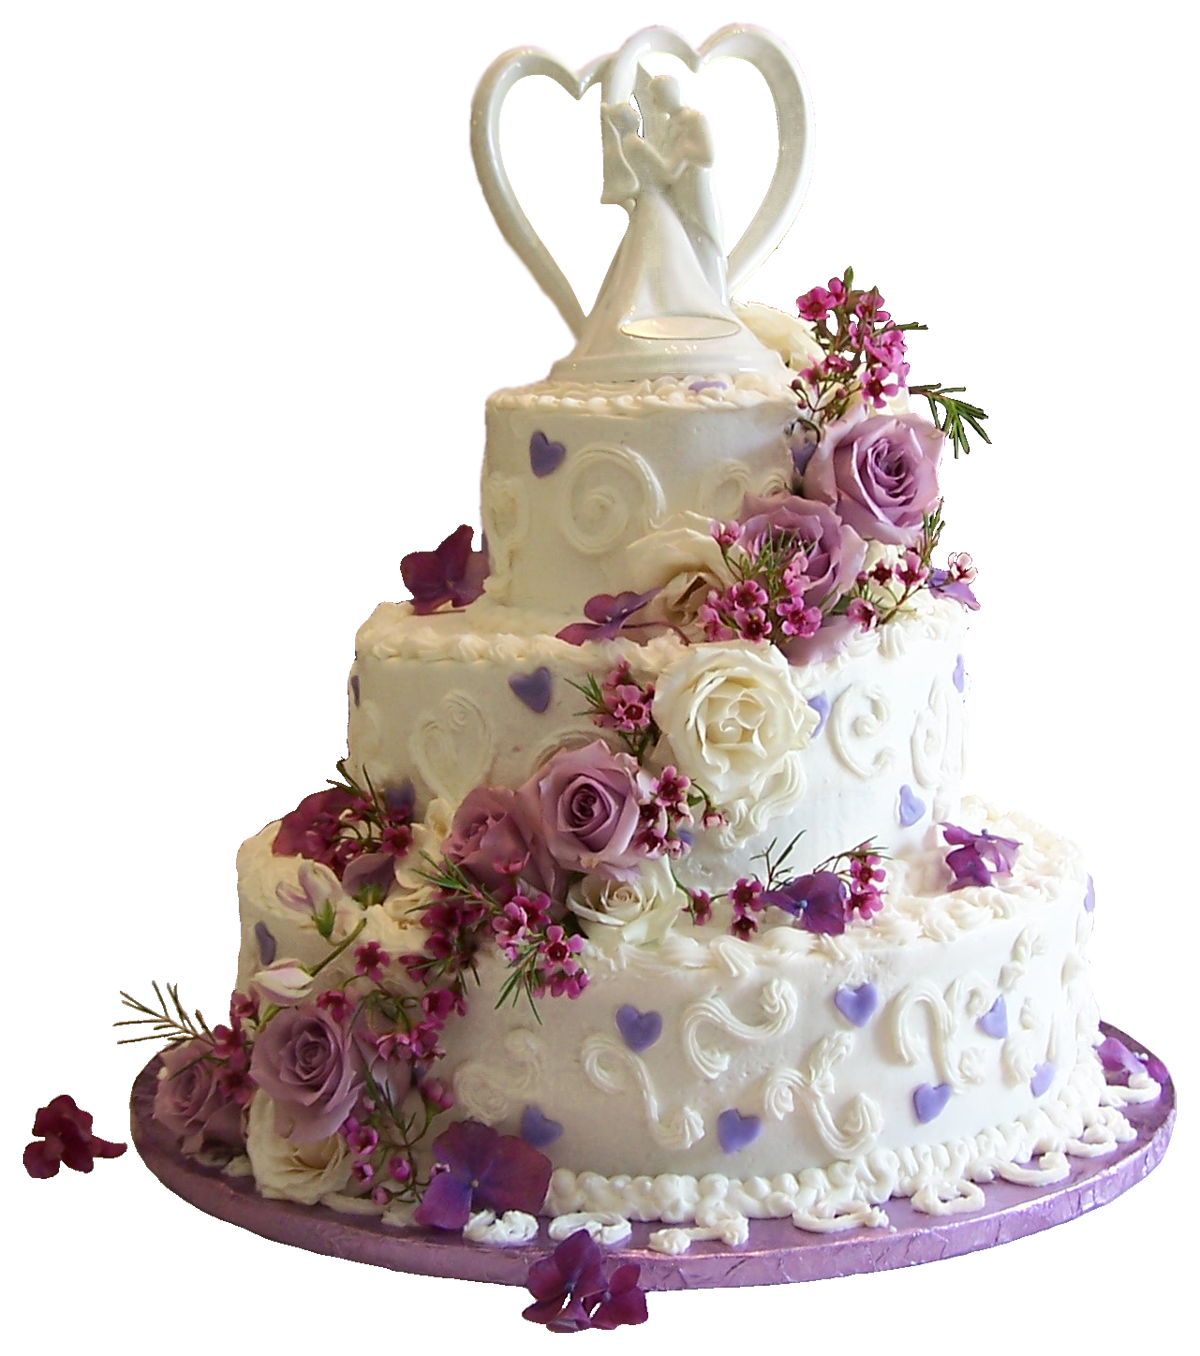 Cakes images wedding cake hd wallpaper and background photos - White Wedding Cake With Purple Roses Png Clipart